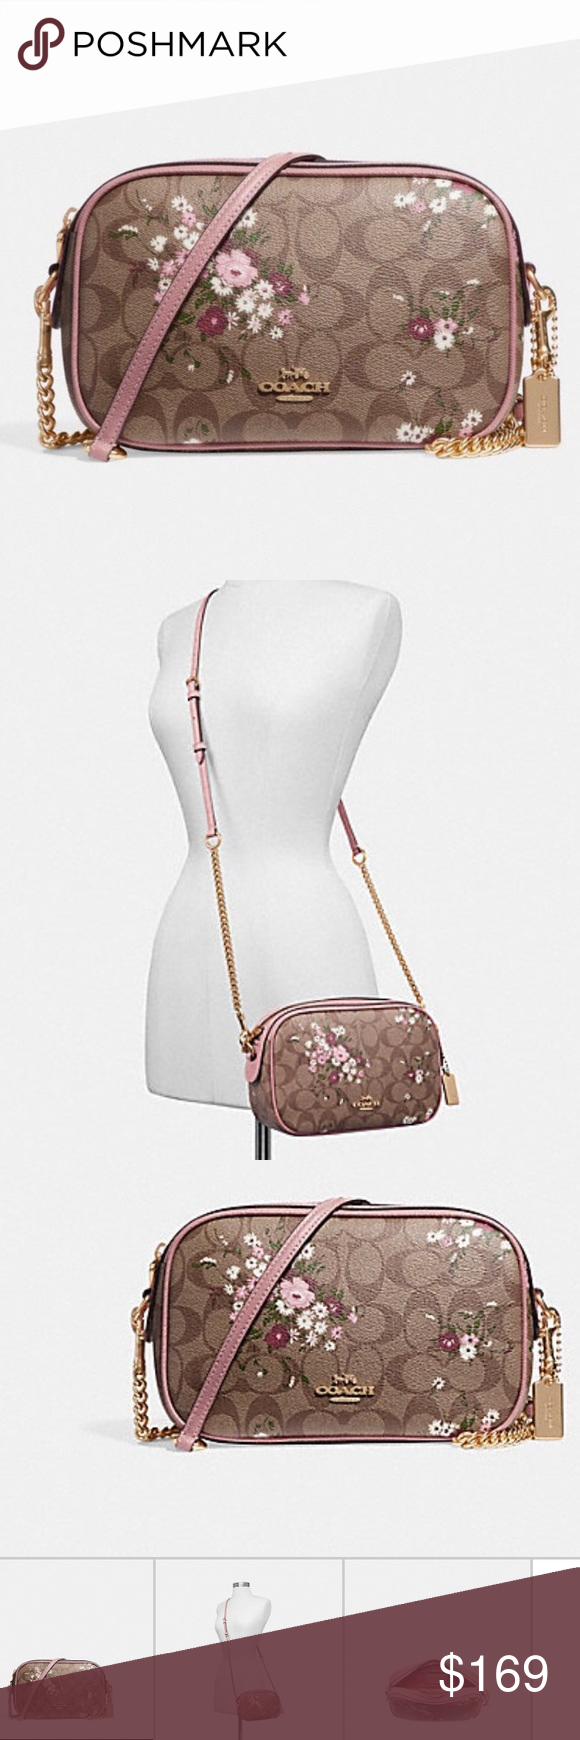 5befed7d4fe2 COACH Isla Chain Crossbody Signature Floral Bundle 1000% AUTHENTIC (store  receipts available for all